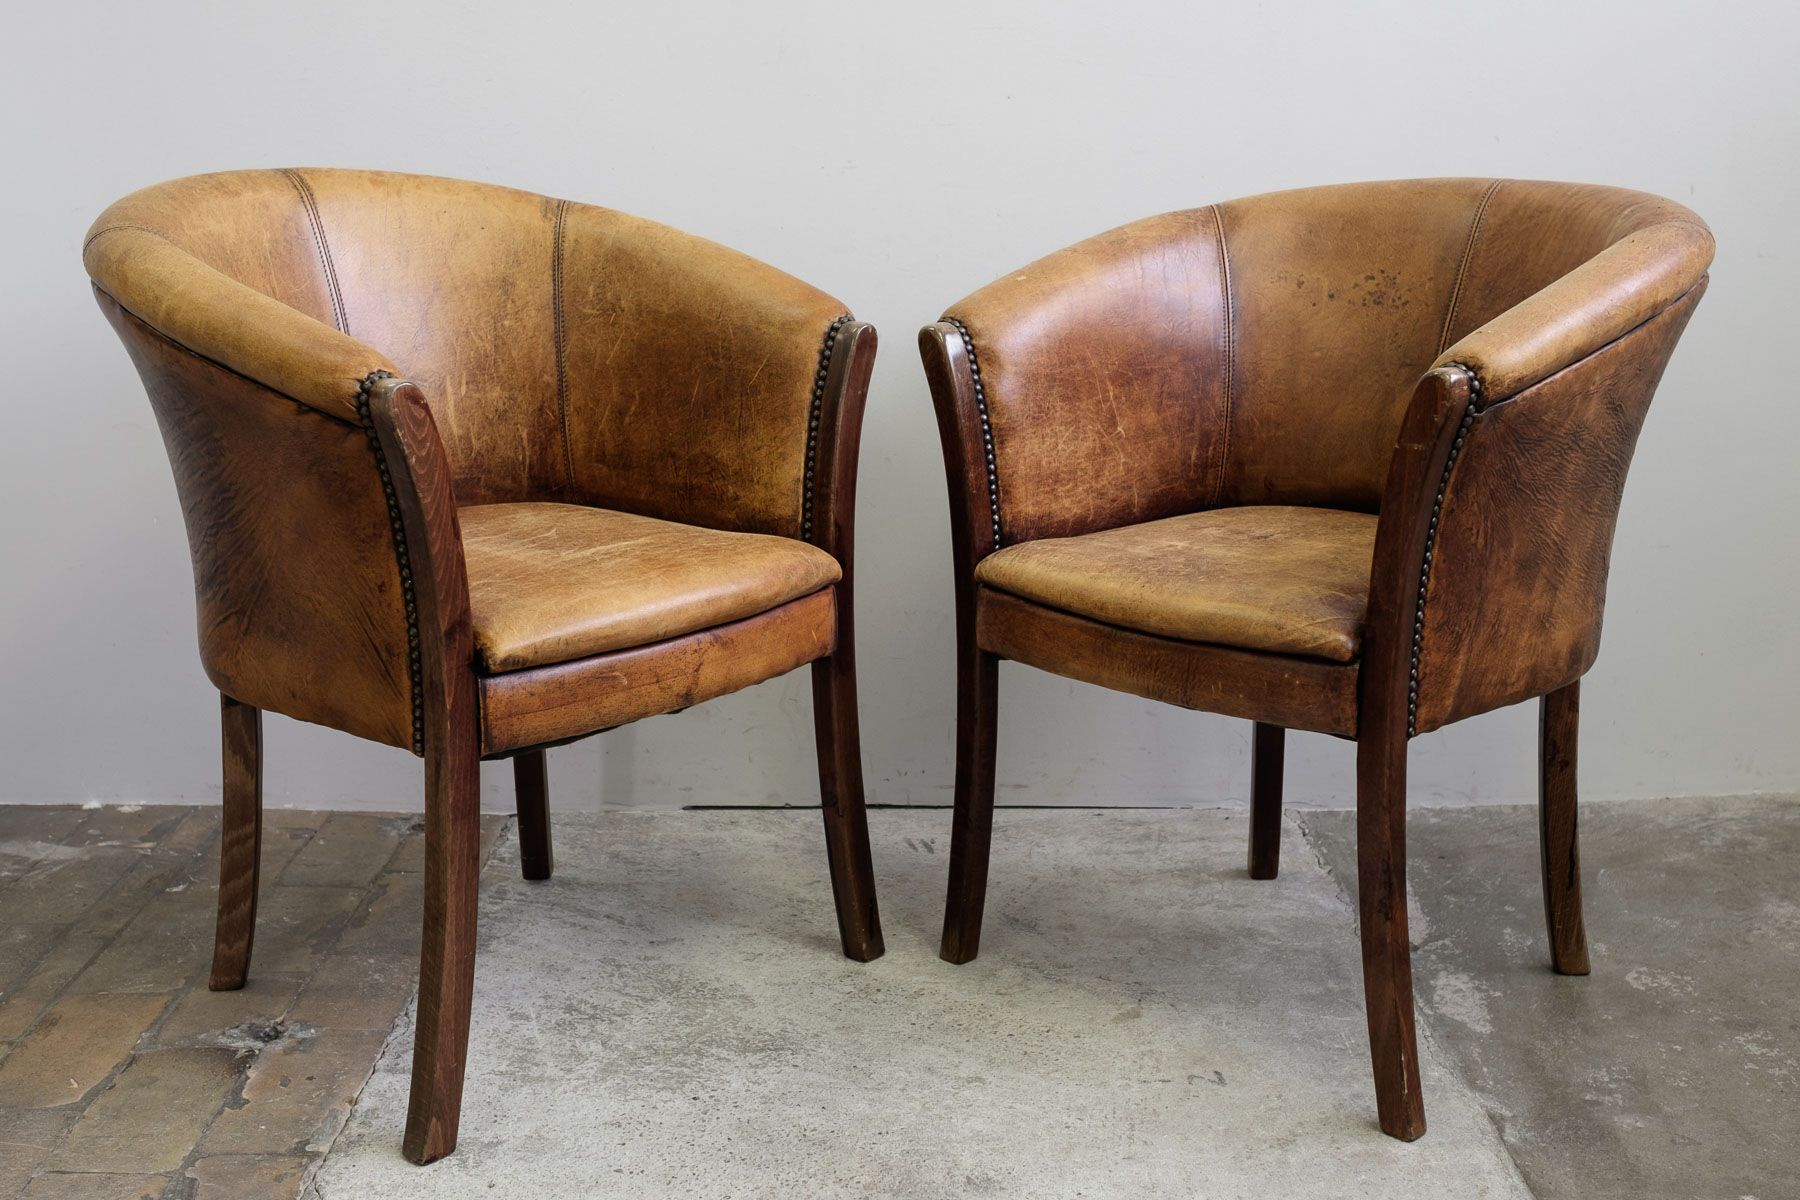 leather club chairs 1970s set of 2 - Brown Leather Club Chair